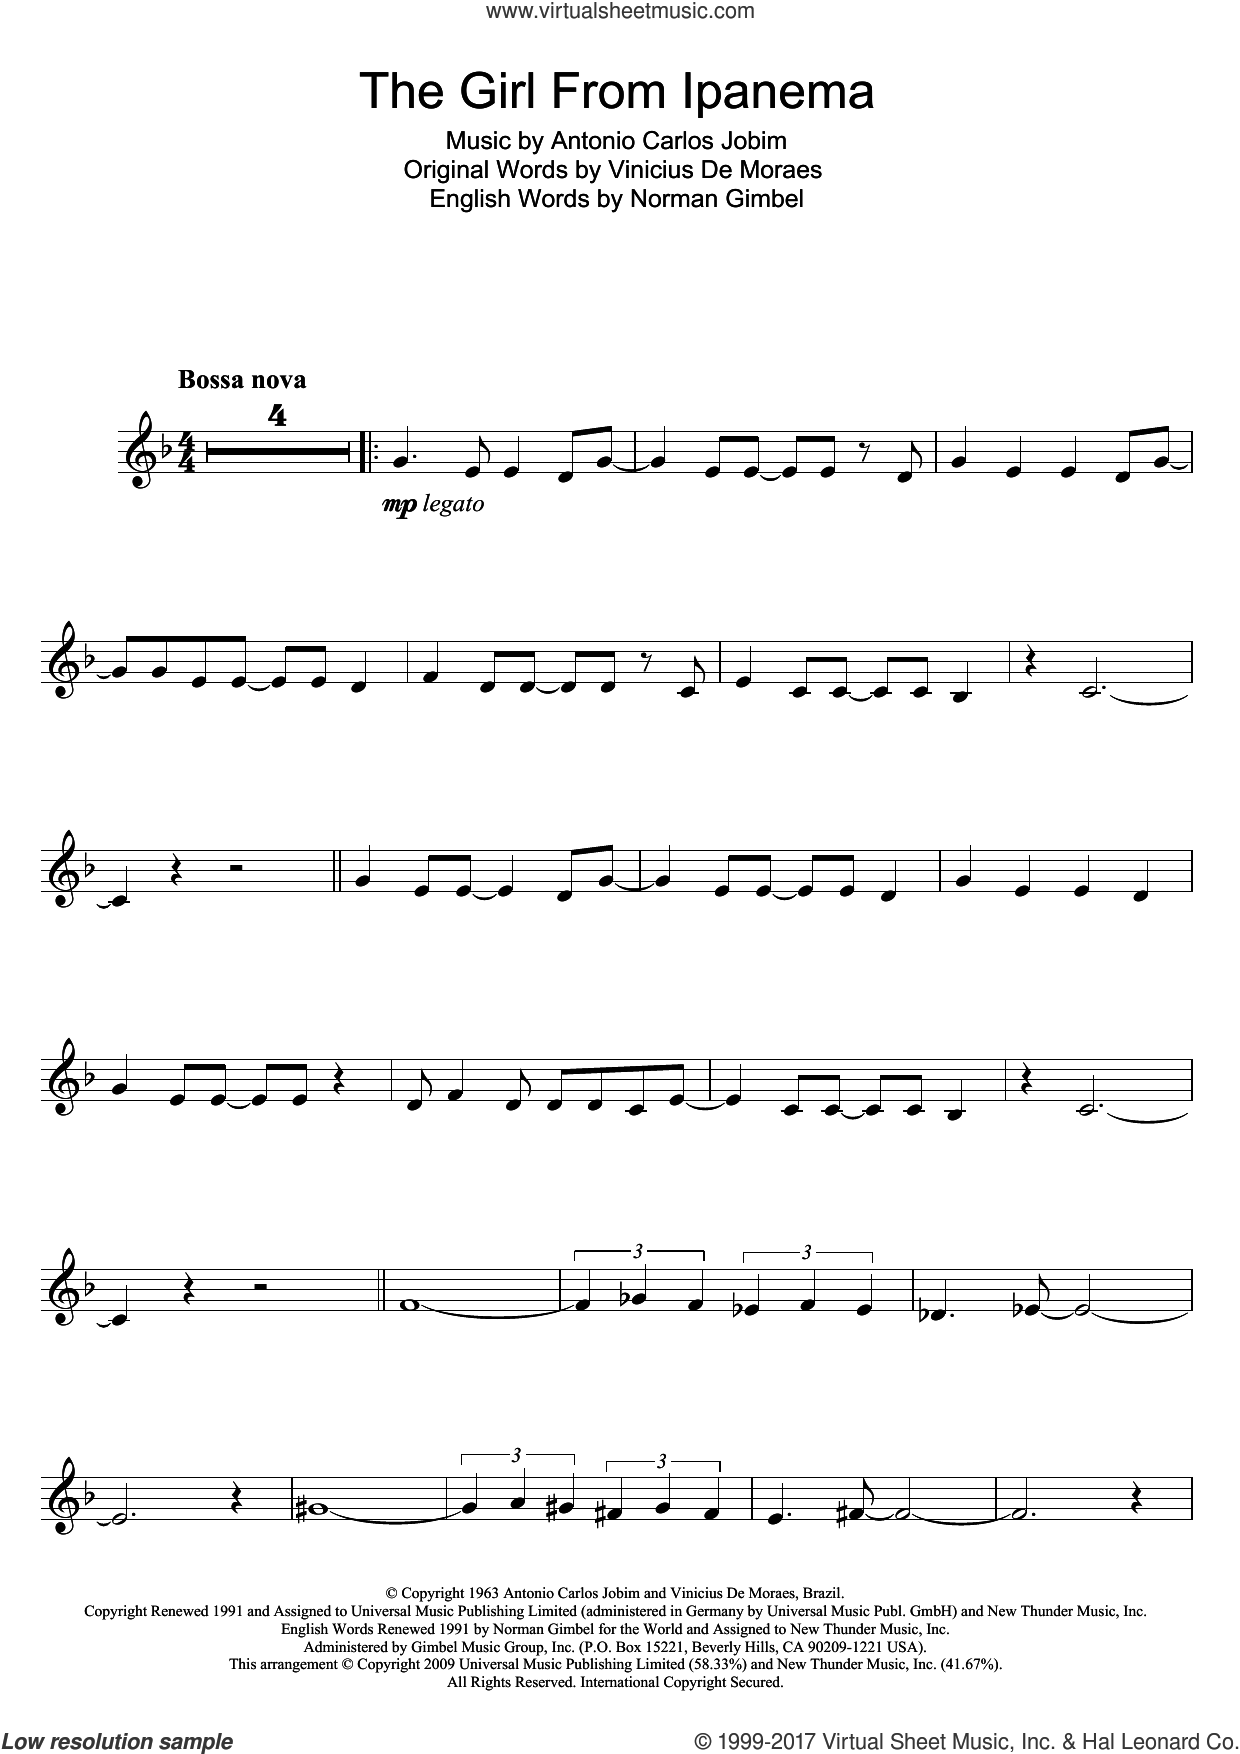 The Girl From Ipanema (Garota De Ipanema) sheet music for clarinet solo by Antonio Carlos Jobim, Norman Gimbel and Vinicius de Moraes, intermediate skill level